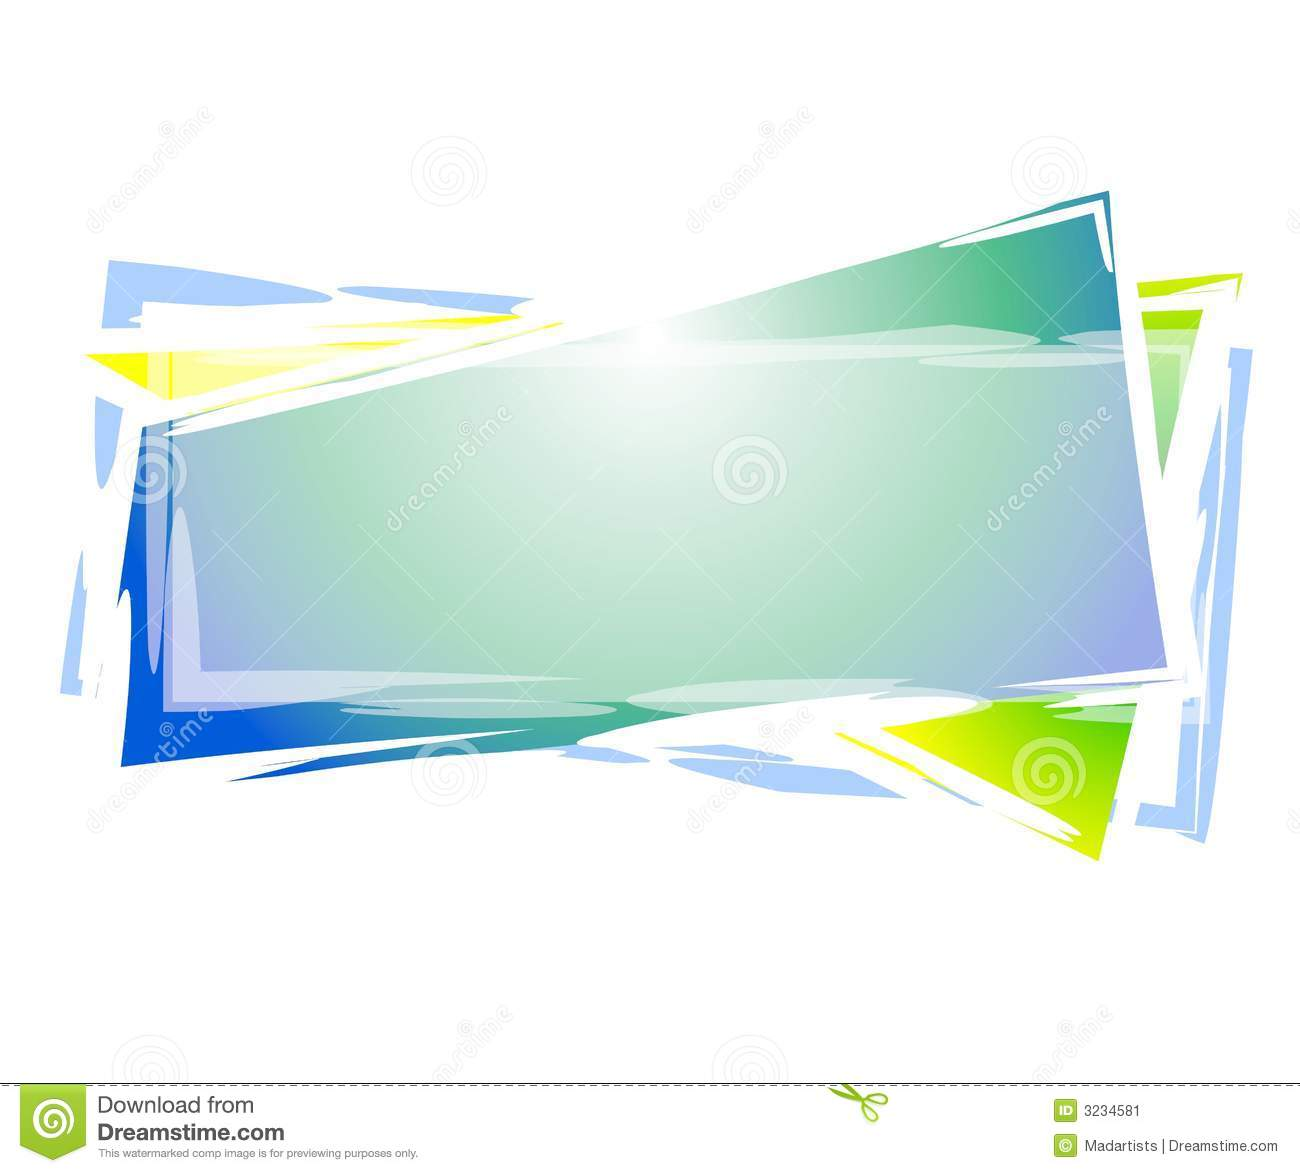 Artsy Rectangle Web Logo Stock Image - Image: 3234581